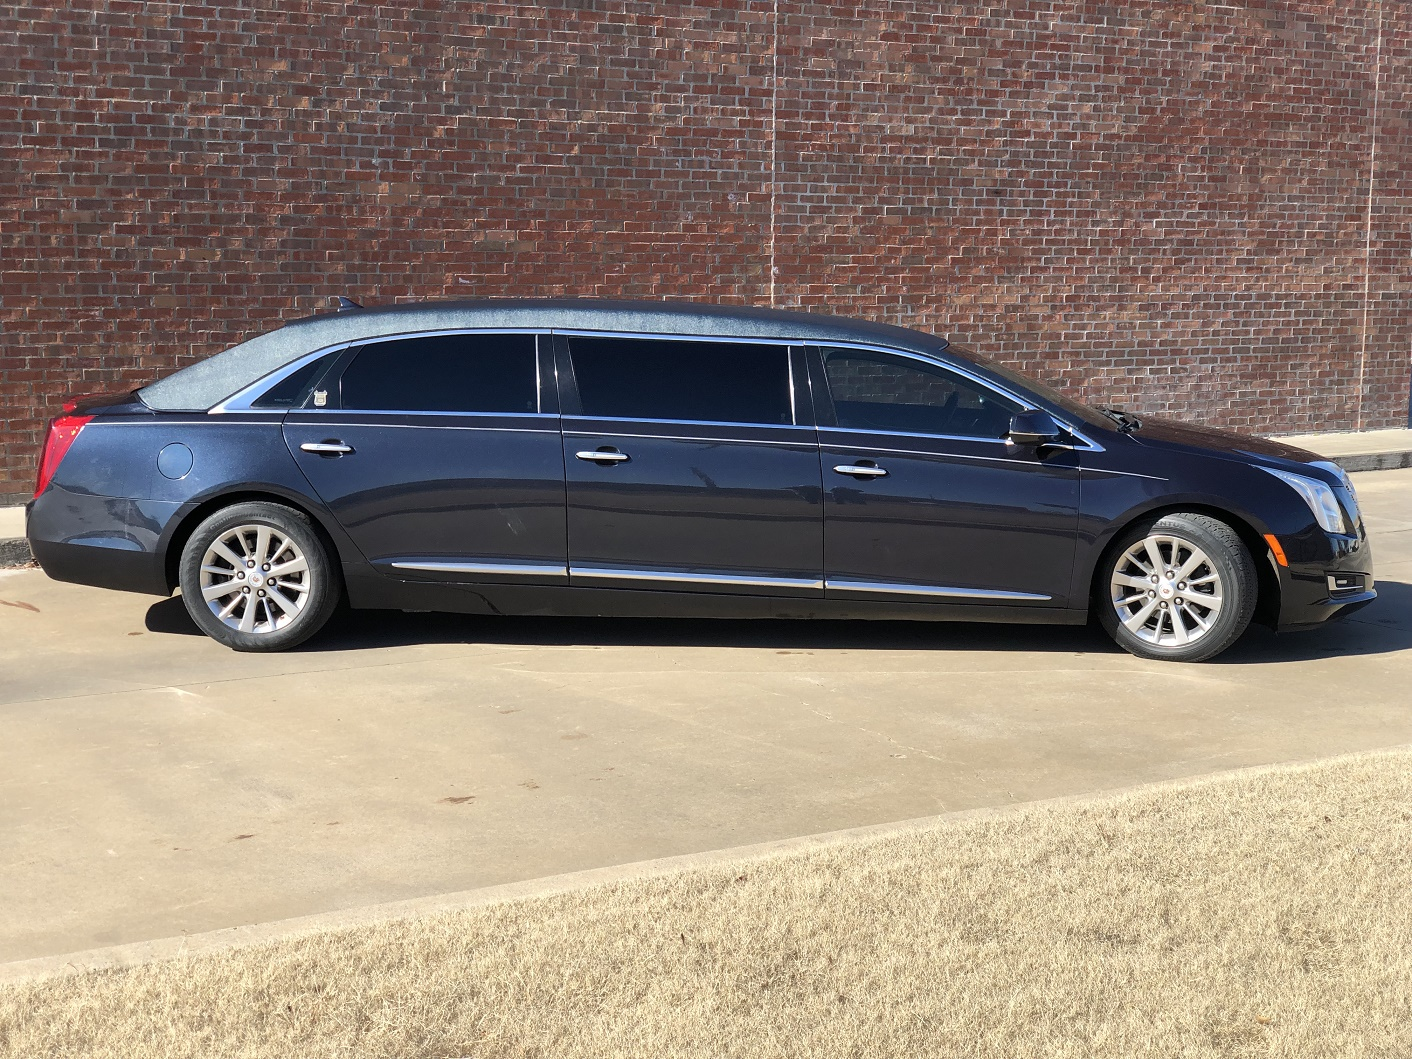 2013 Blue Cadillac Armbruster Stageway Six Door Funeral Limousine 1